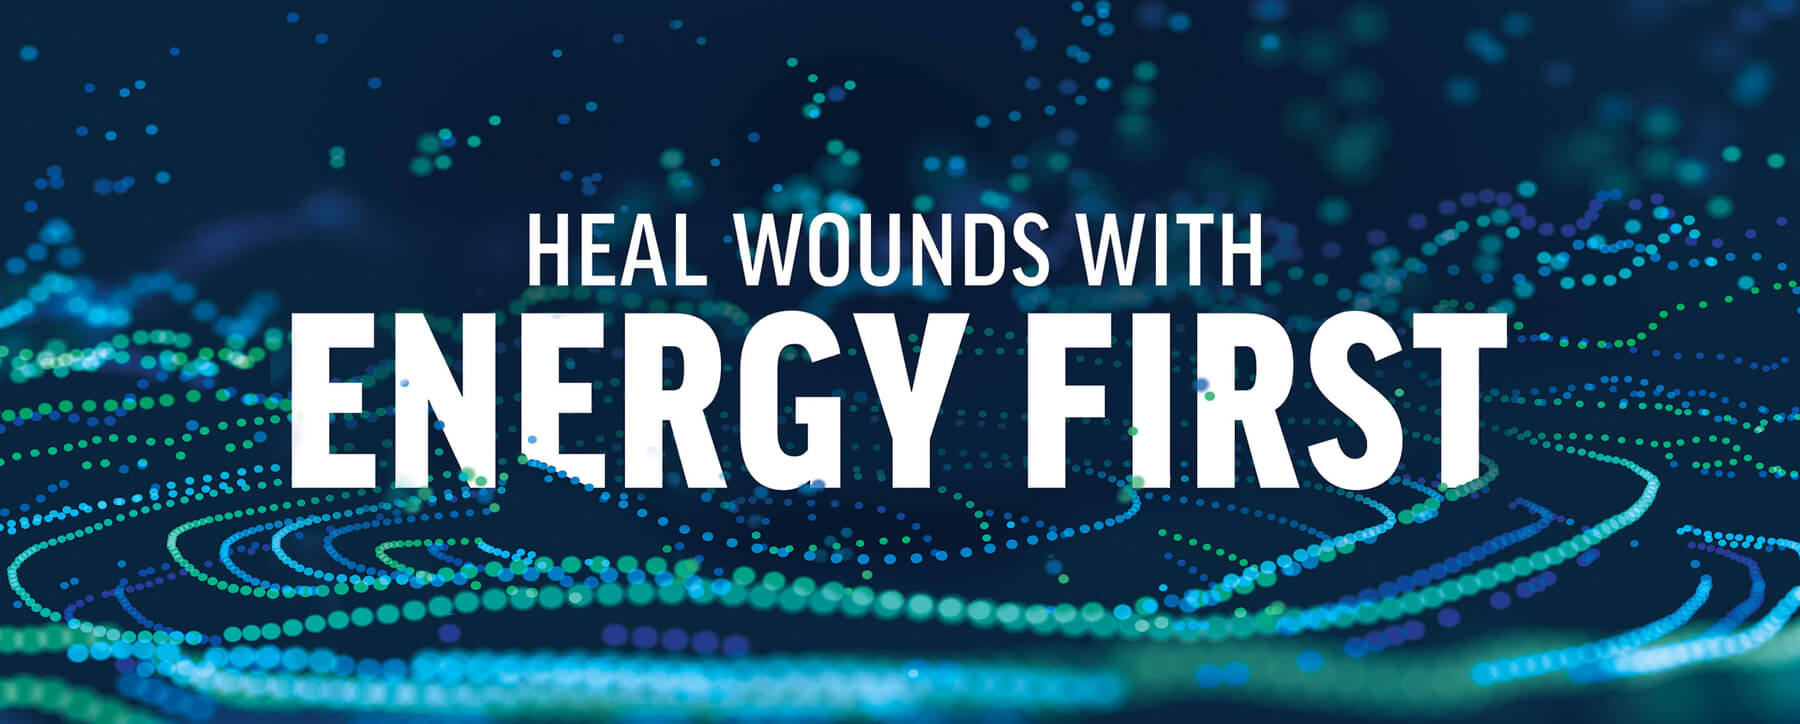 Heal Wounds With Energy First